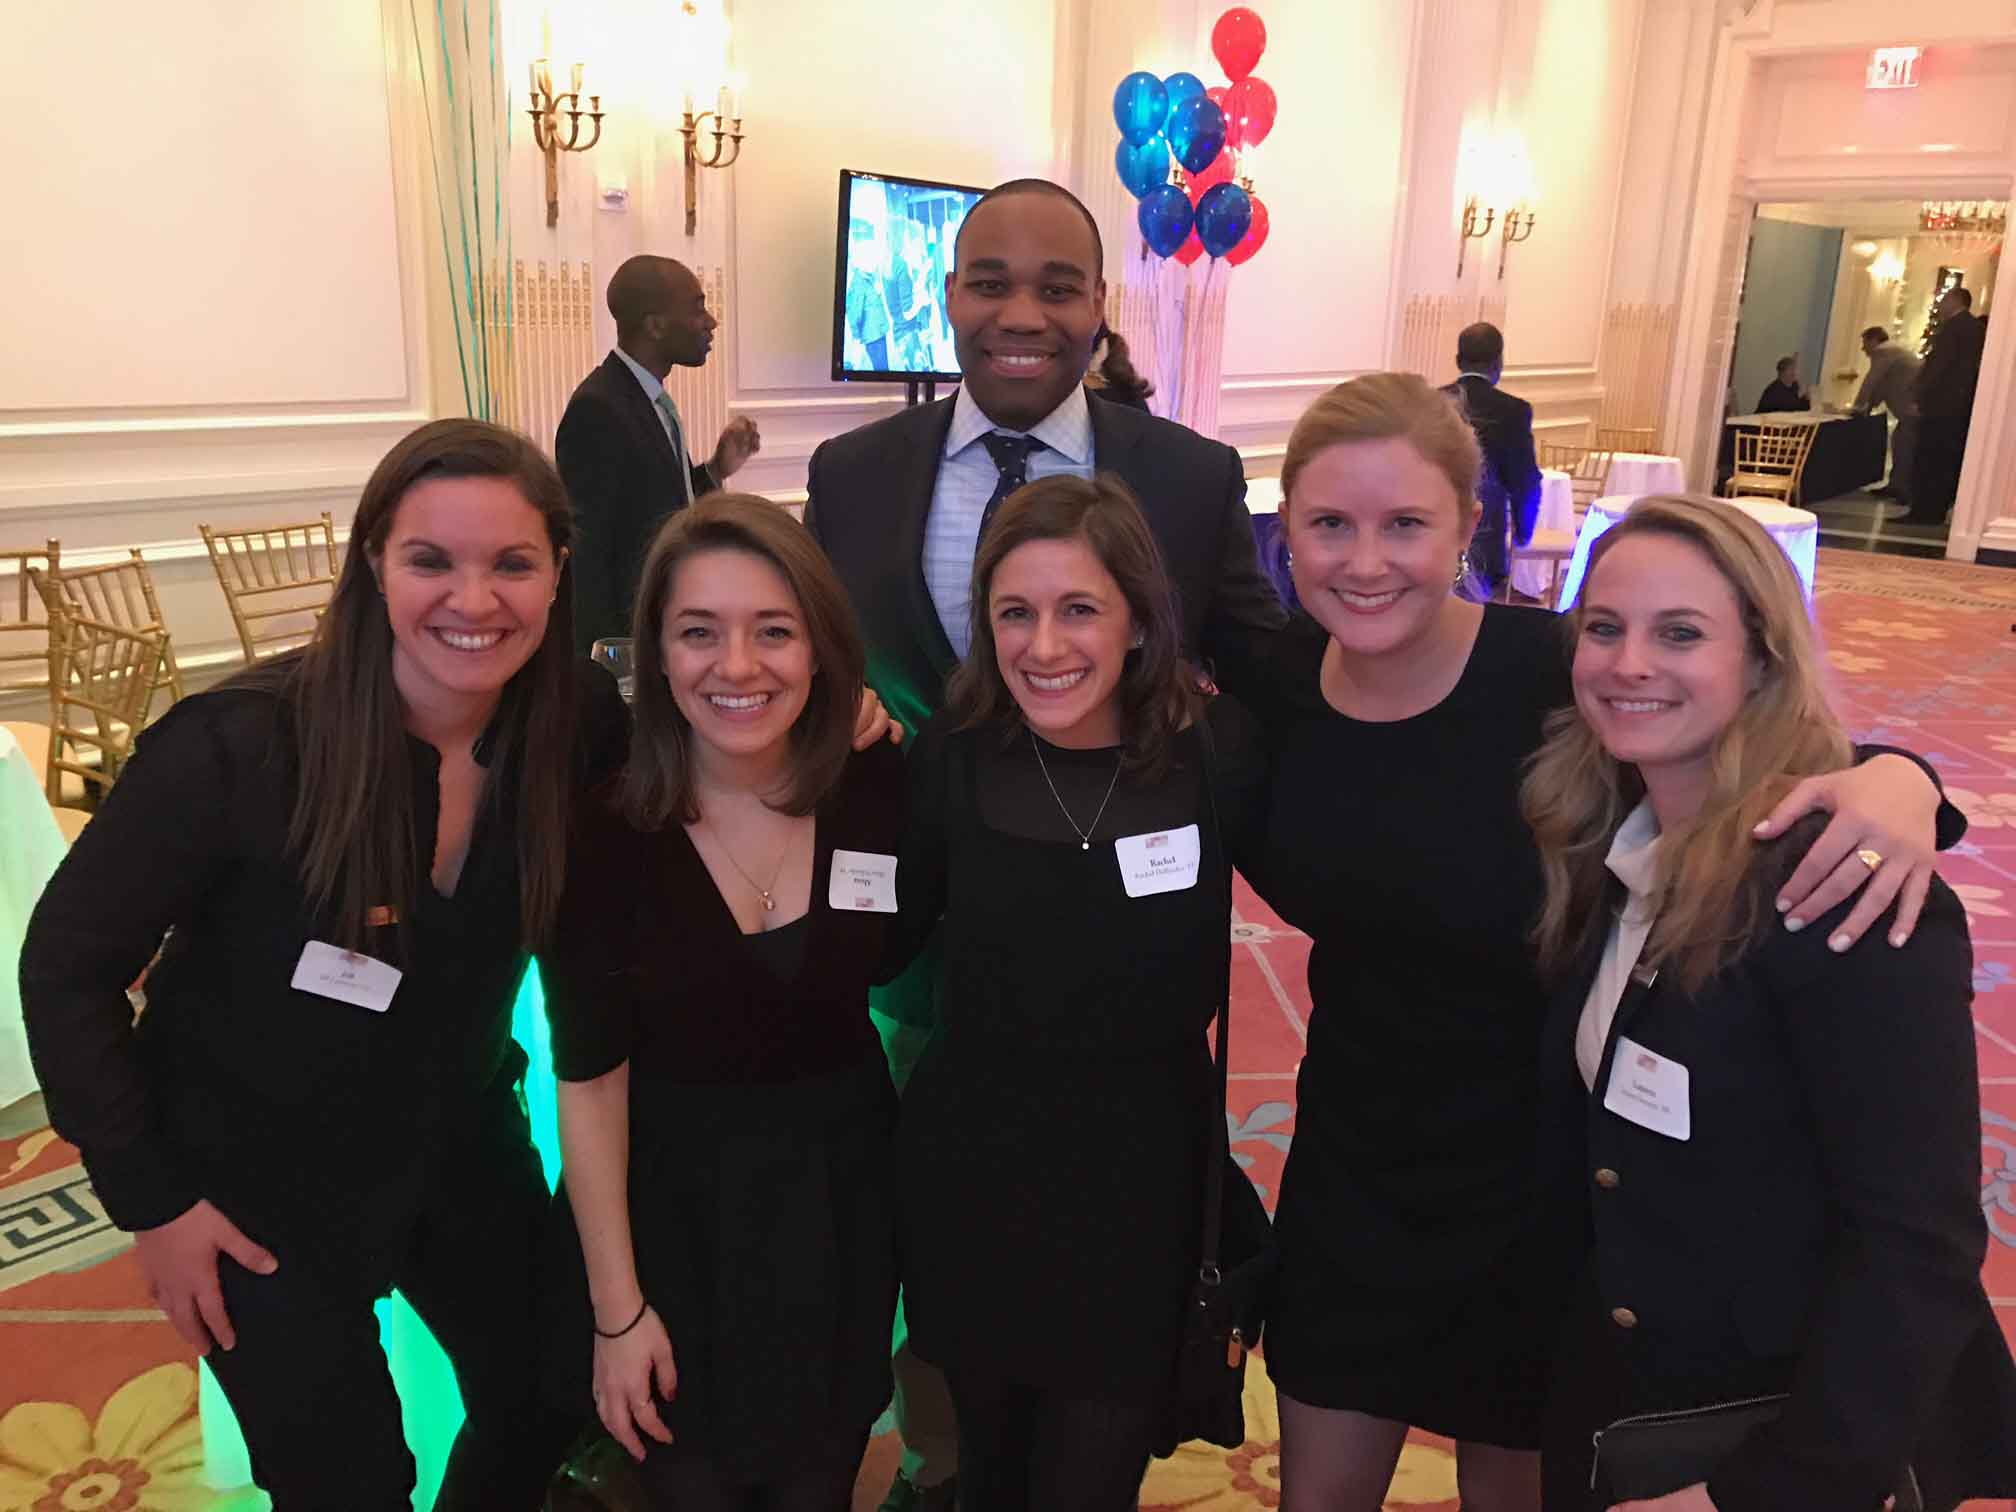 Lauren Steinitz '07 and other alumni at Lafayete's annual holiday party in New York City